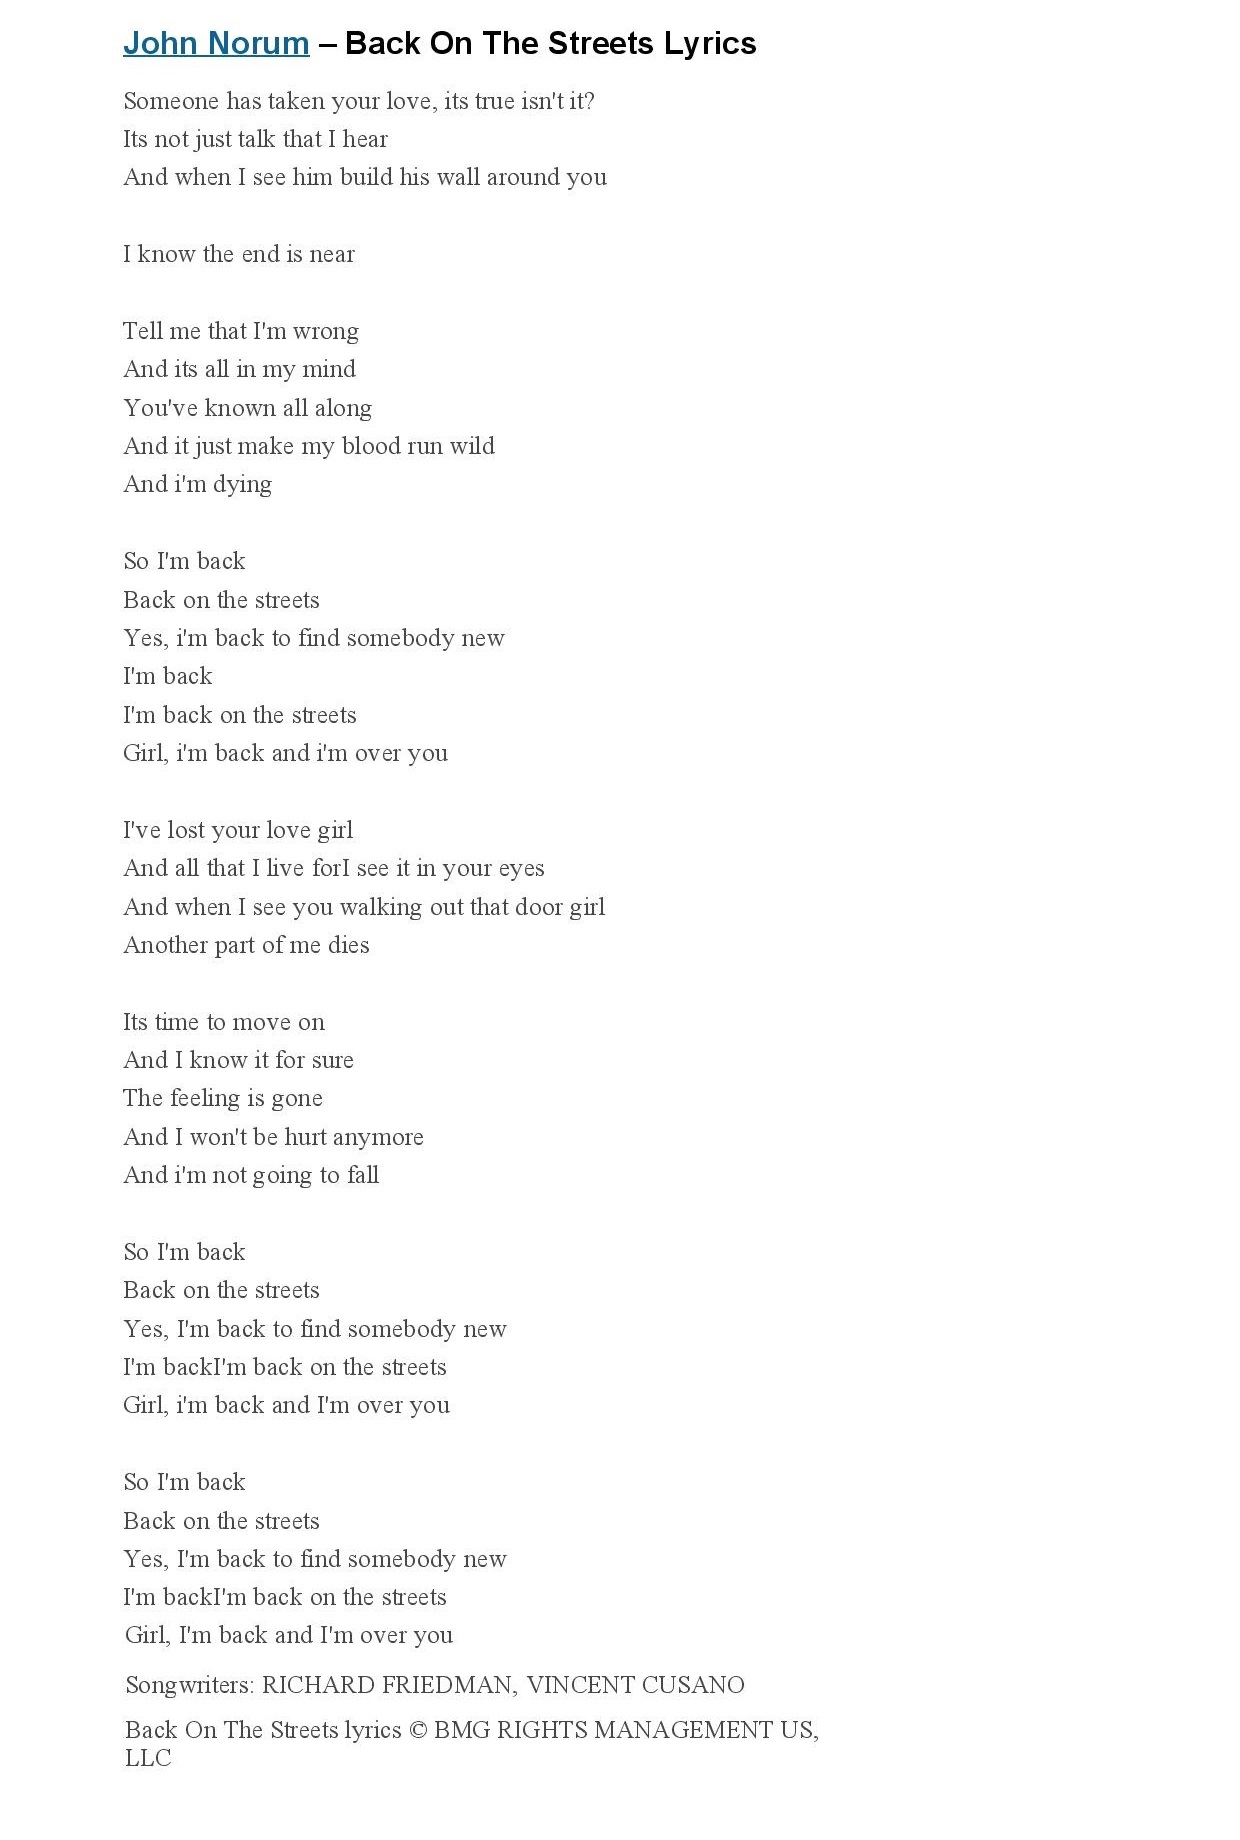 2 Back On The Streets Lyrics - John Norum-page-001.jpg